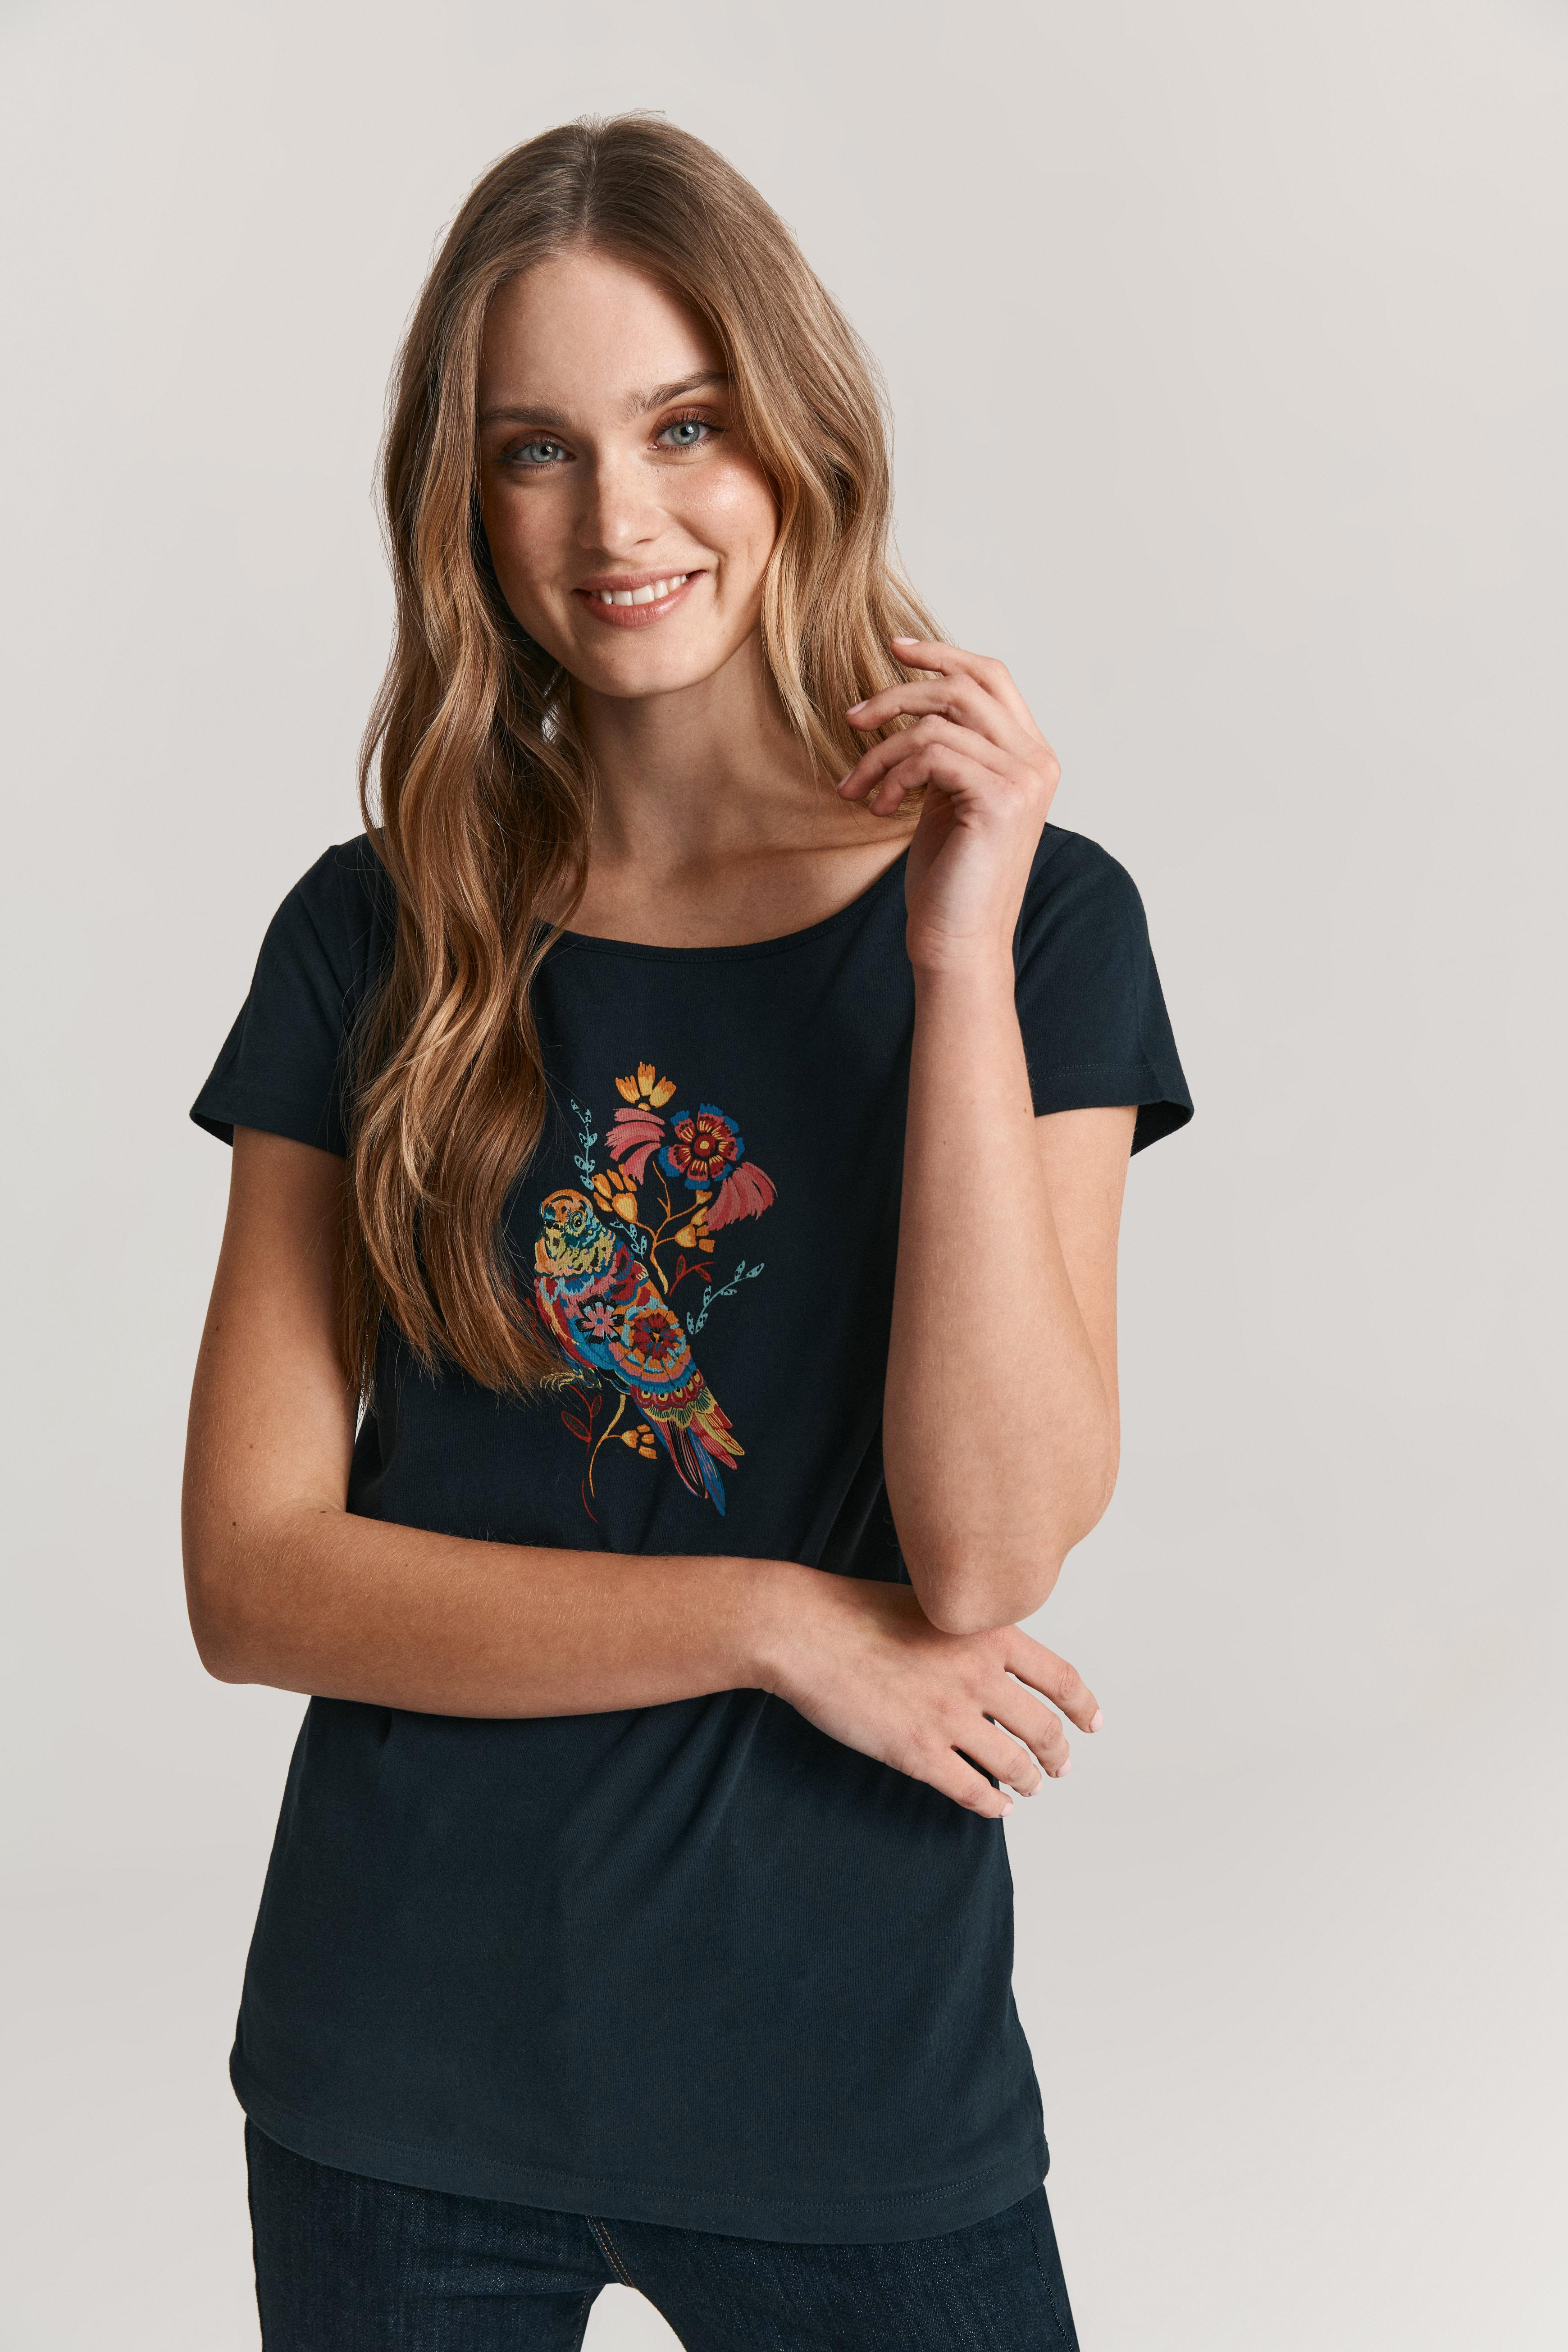 LADIES' ORGANIC COTTON T-SHIRT WITH A PRINT ALBINA 6